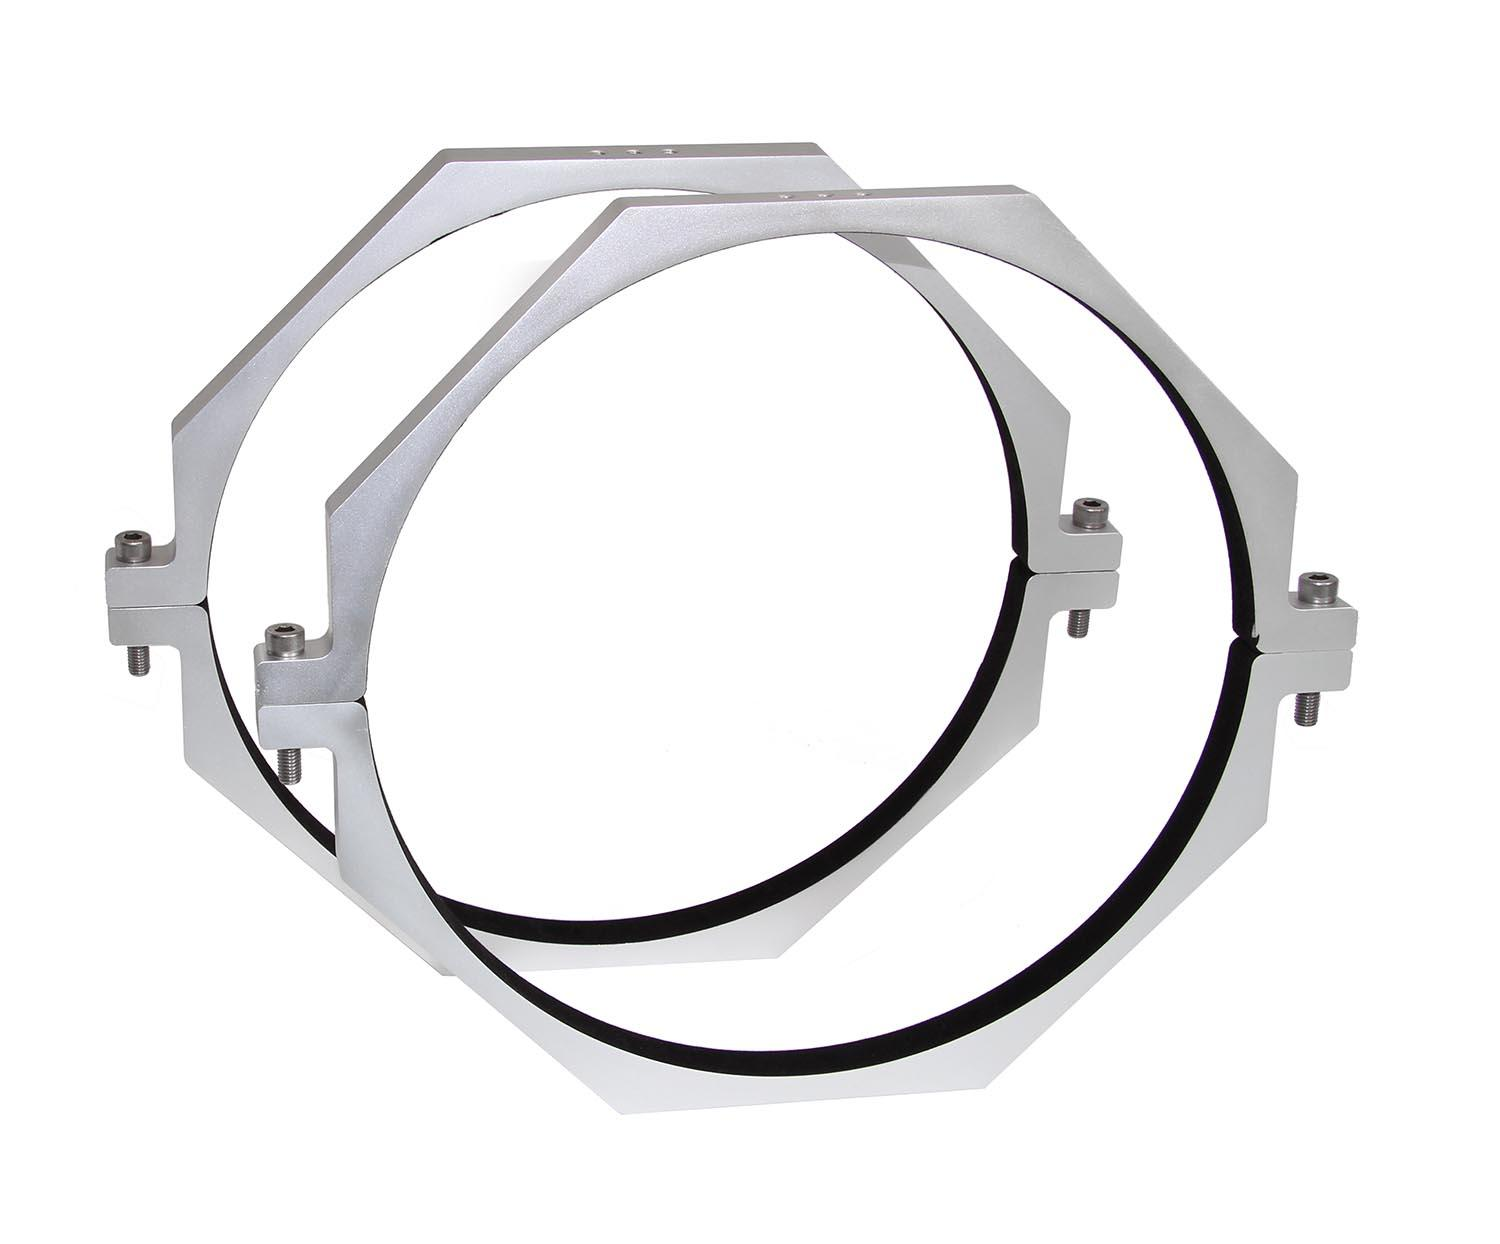 TS-Optics CNC Aluminium Tube Rings for telescopes with 412 mm diameter [EN]